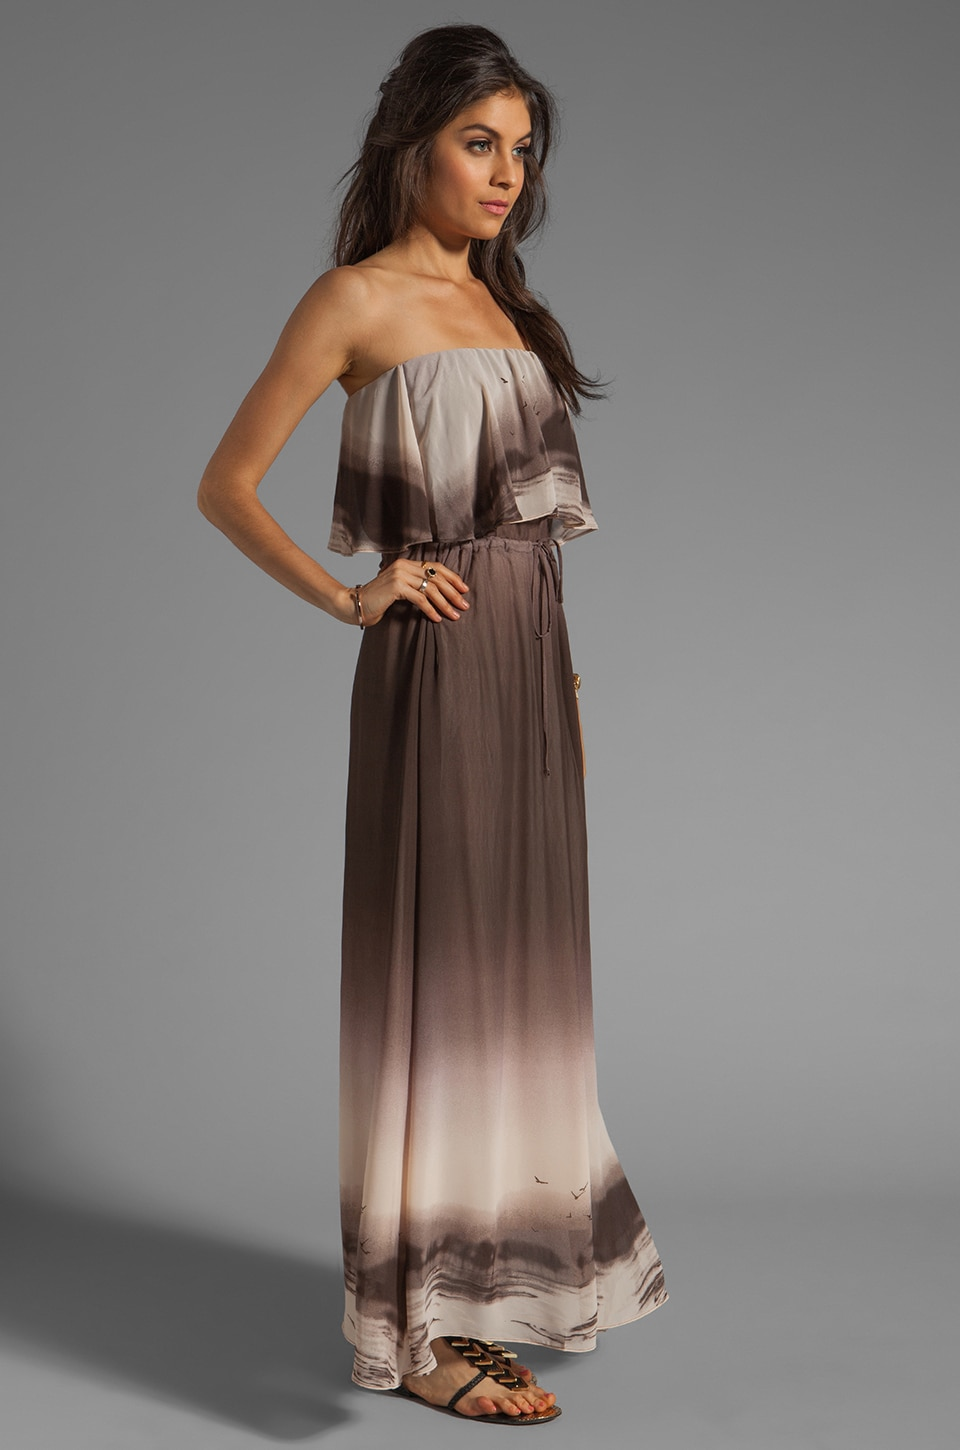 Dolce Vita Fonda Beachscape Strapless Maxi Dress in Brown